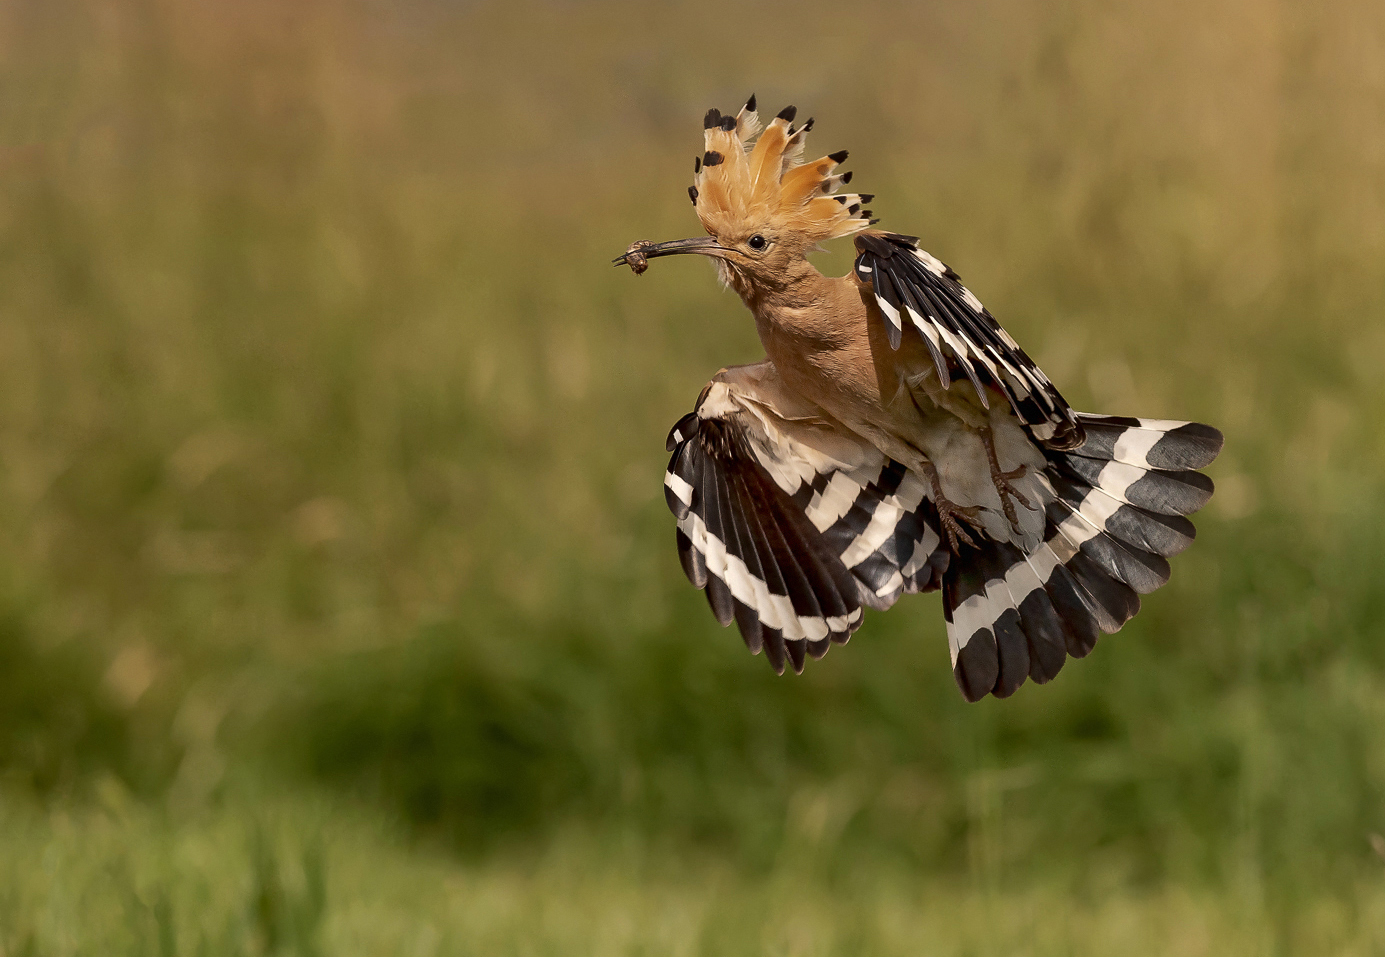 Hoopoe Returning to Young with Food